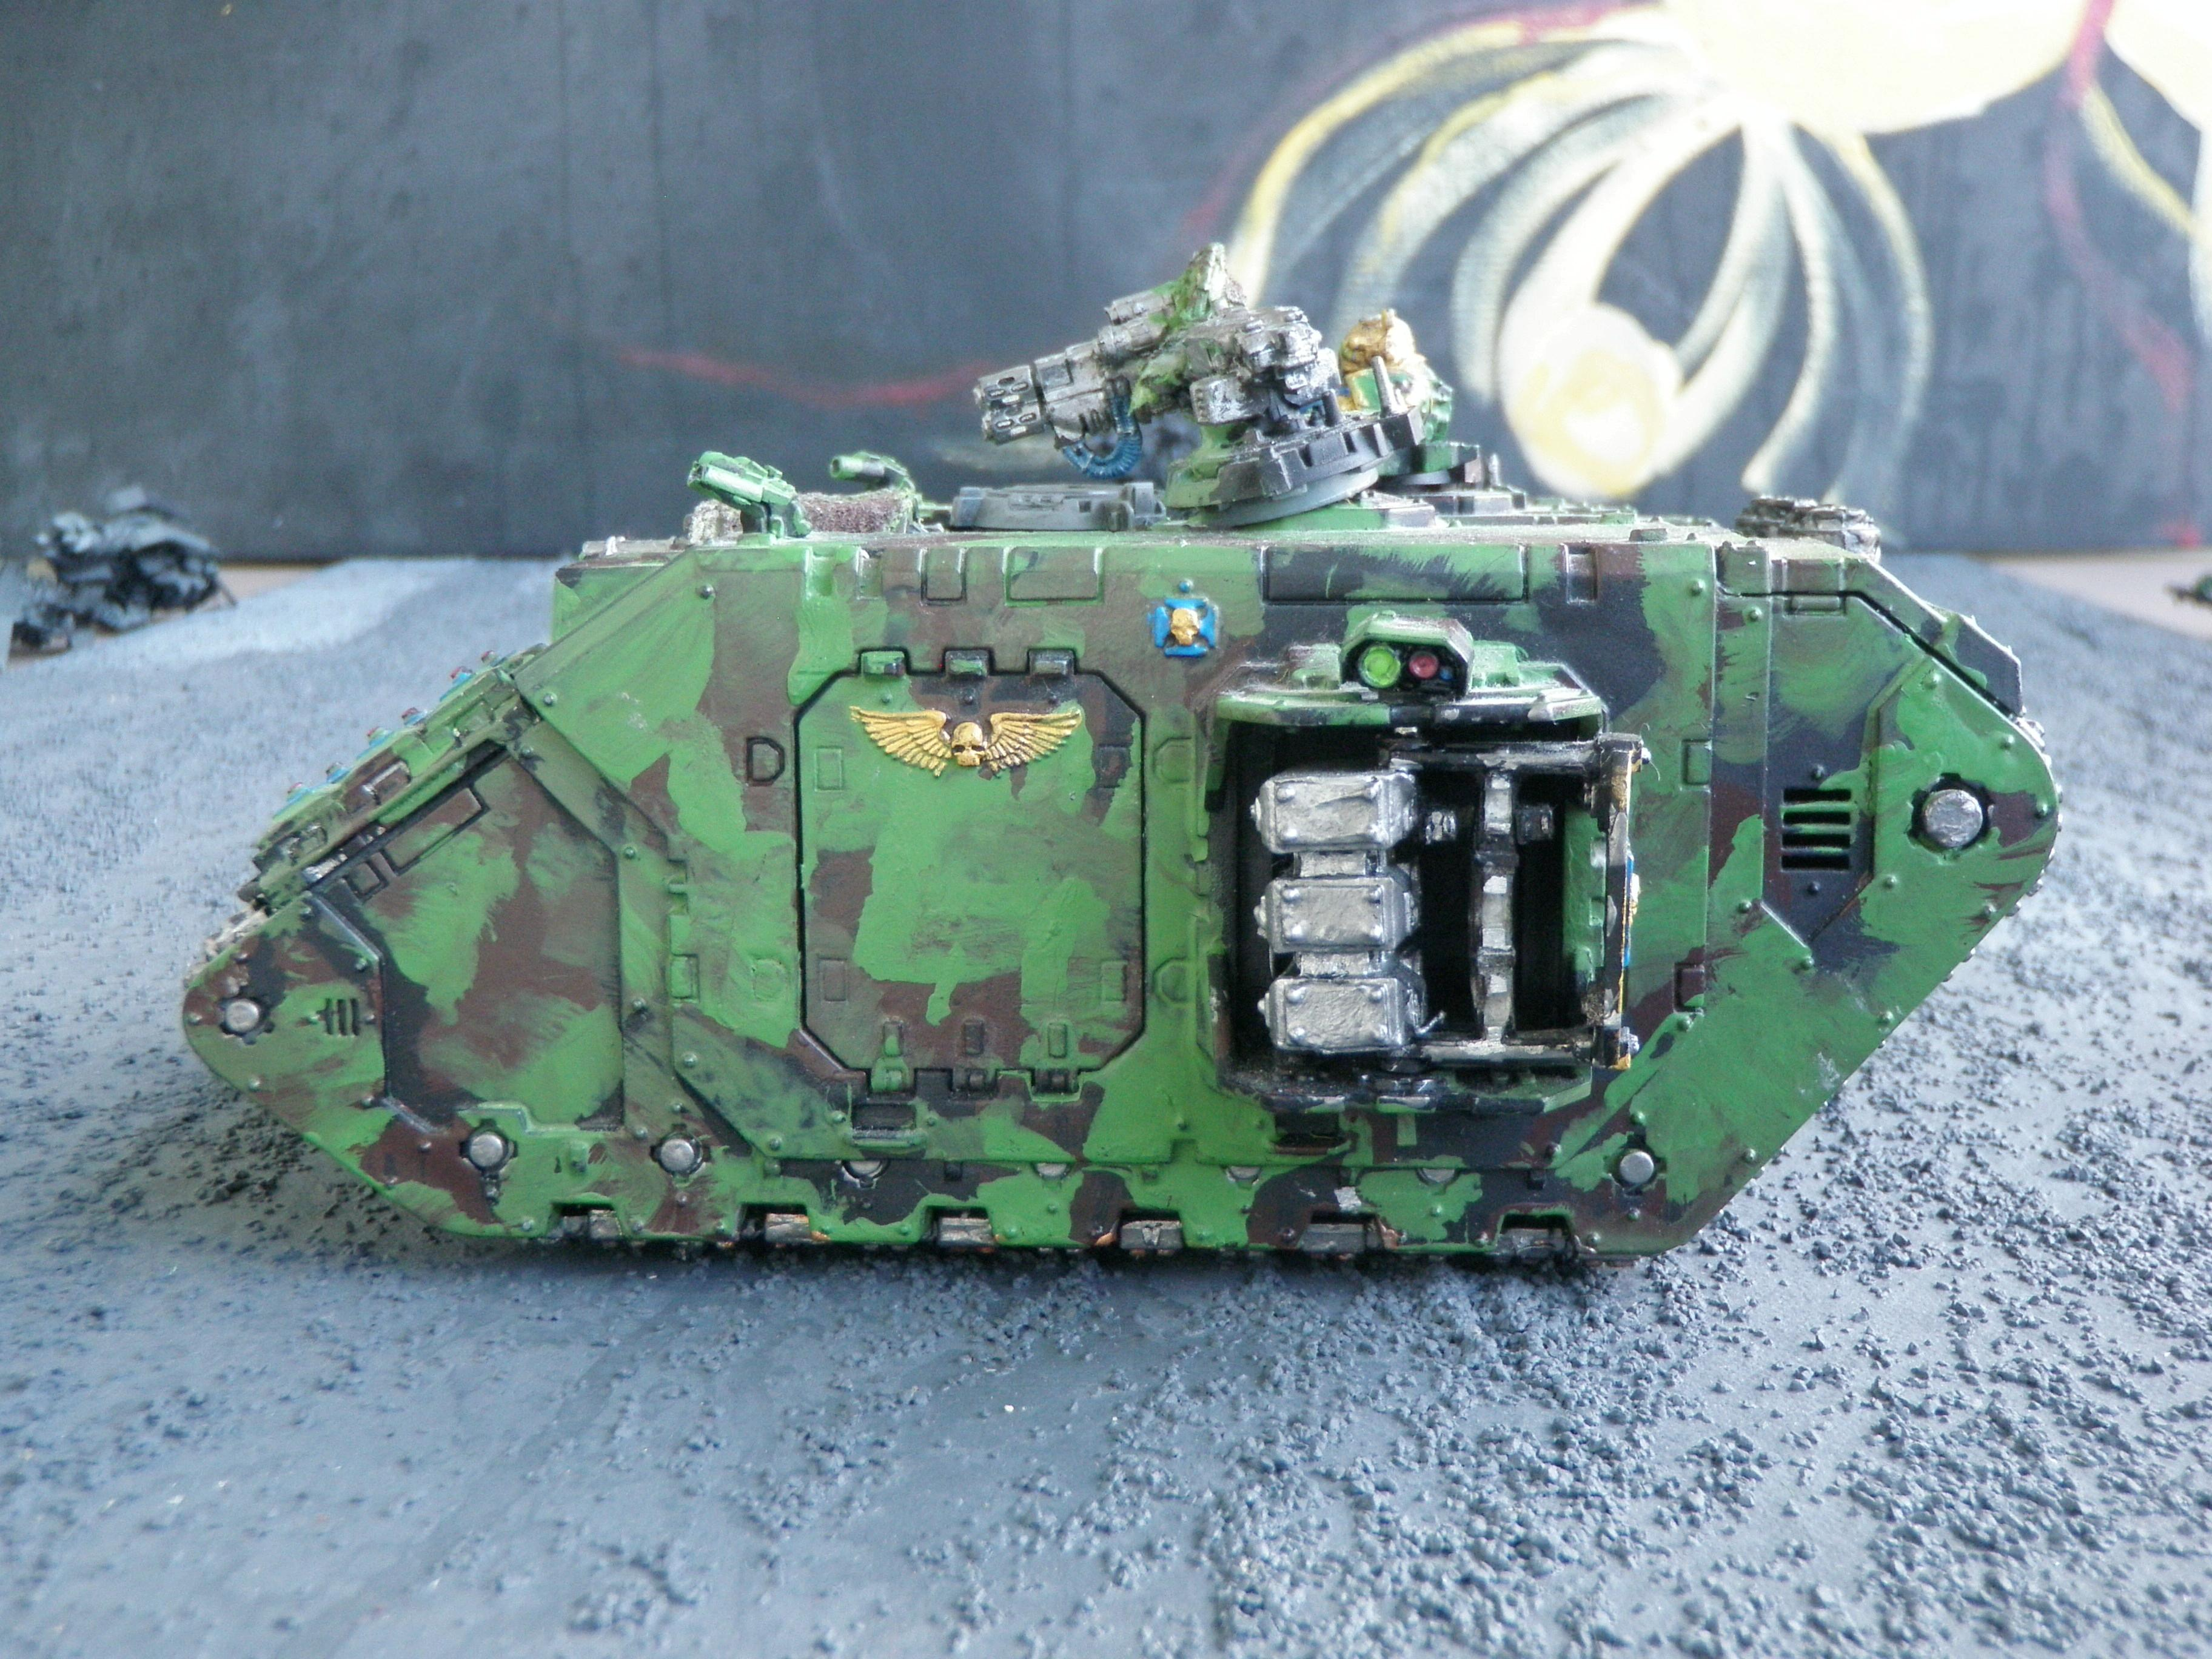 Another View of a Broken Land Raider